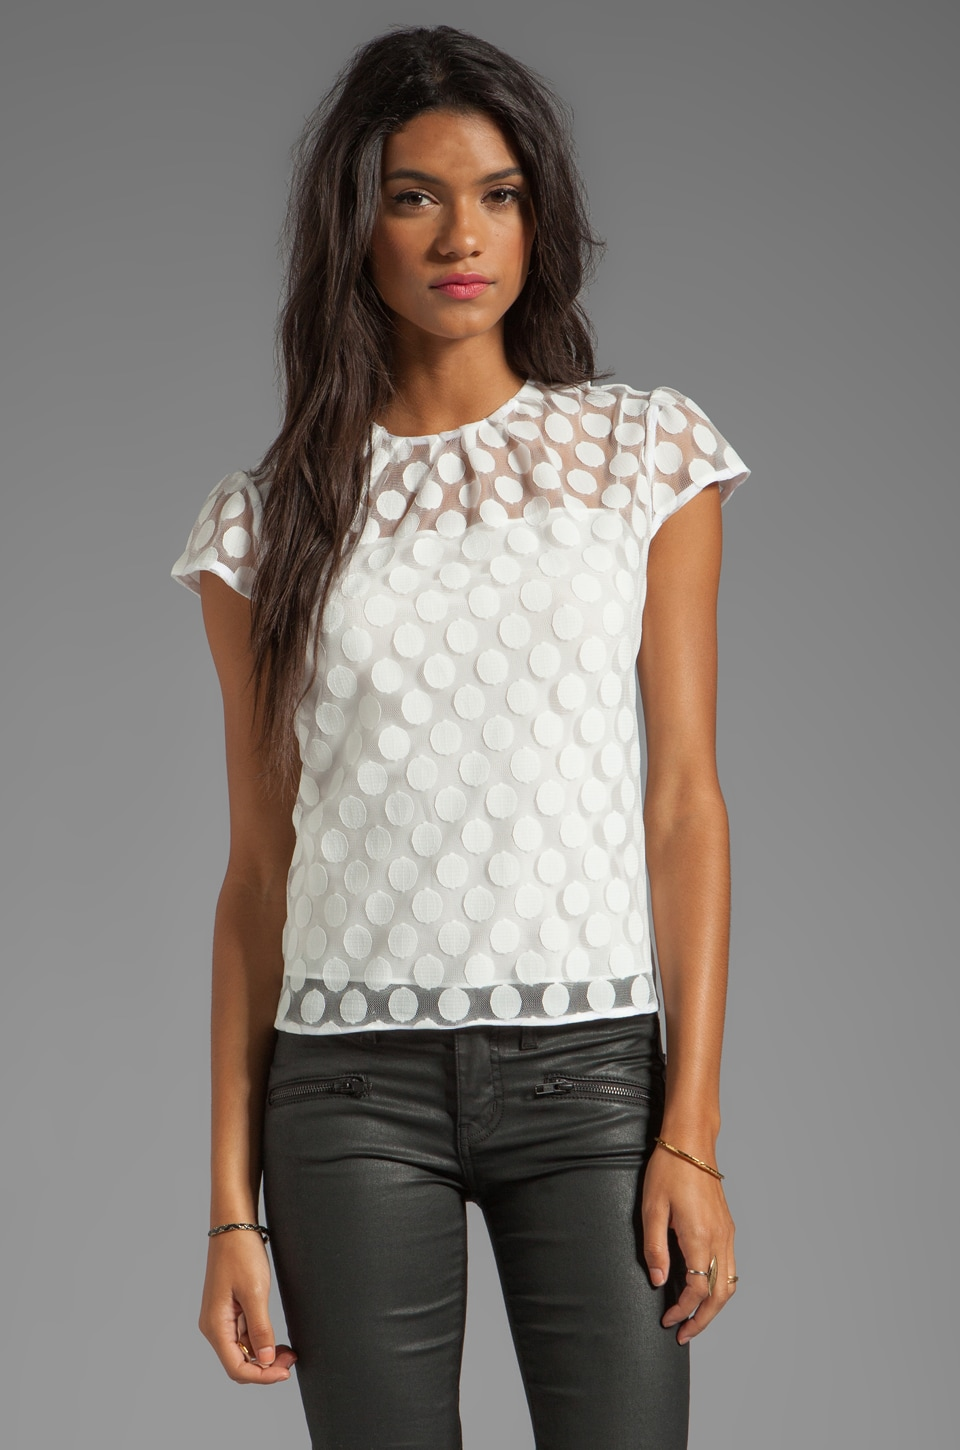 MILLY Gumball Dot Lace Lexi Cap Sleeve Top in White